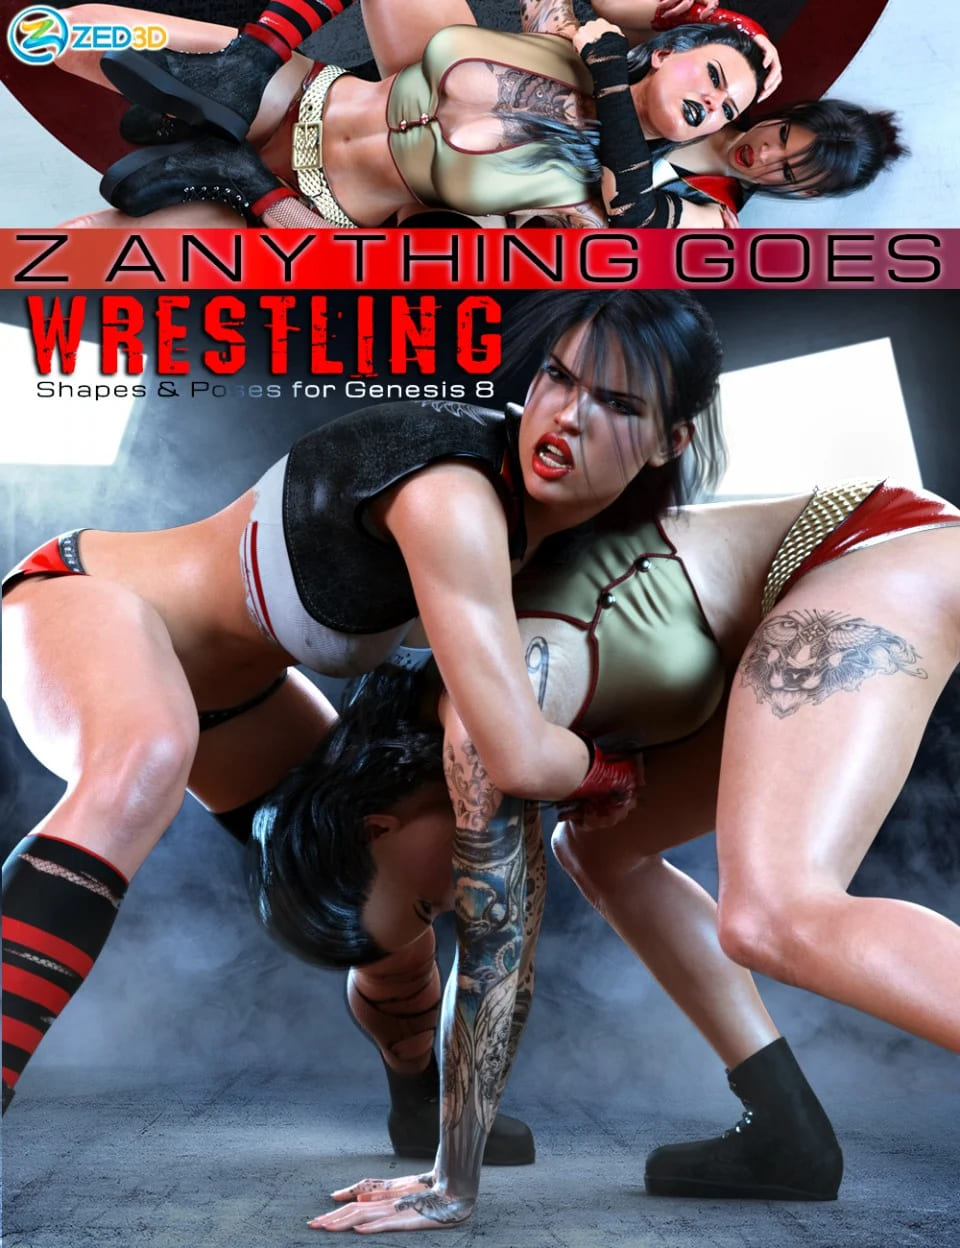 Z Anything Goes Wrestling Shapes and Poses for Genesis 8_DAZ3D下载站